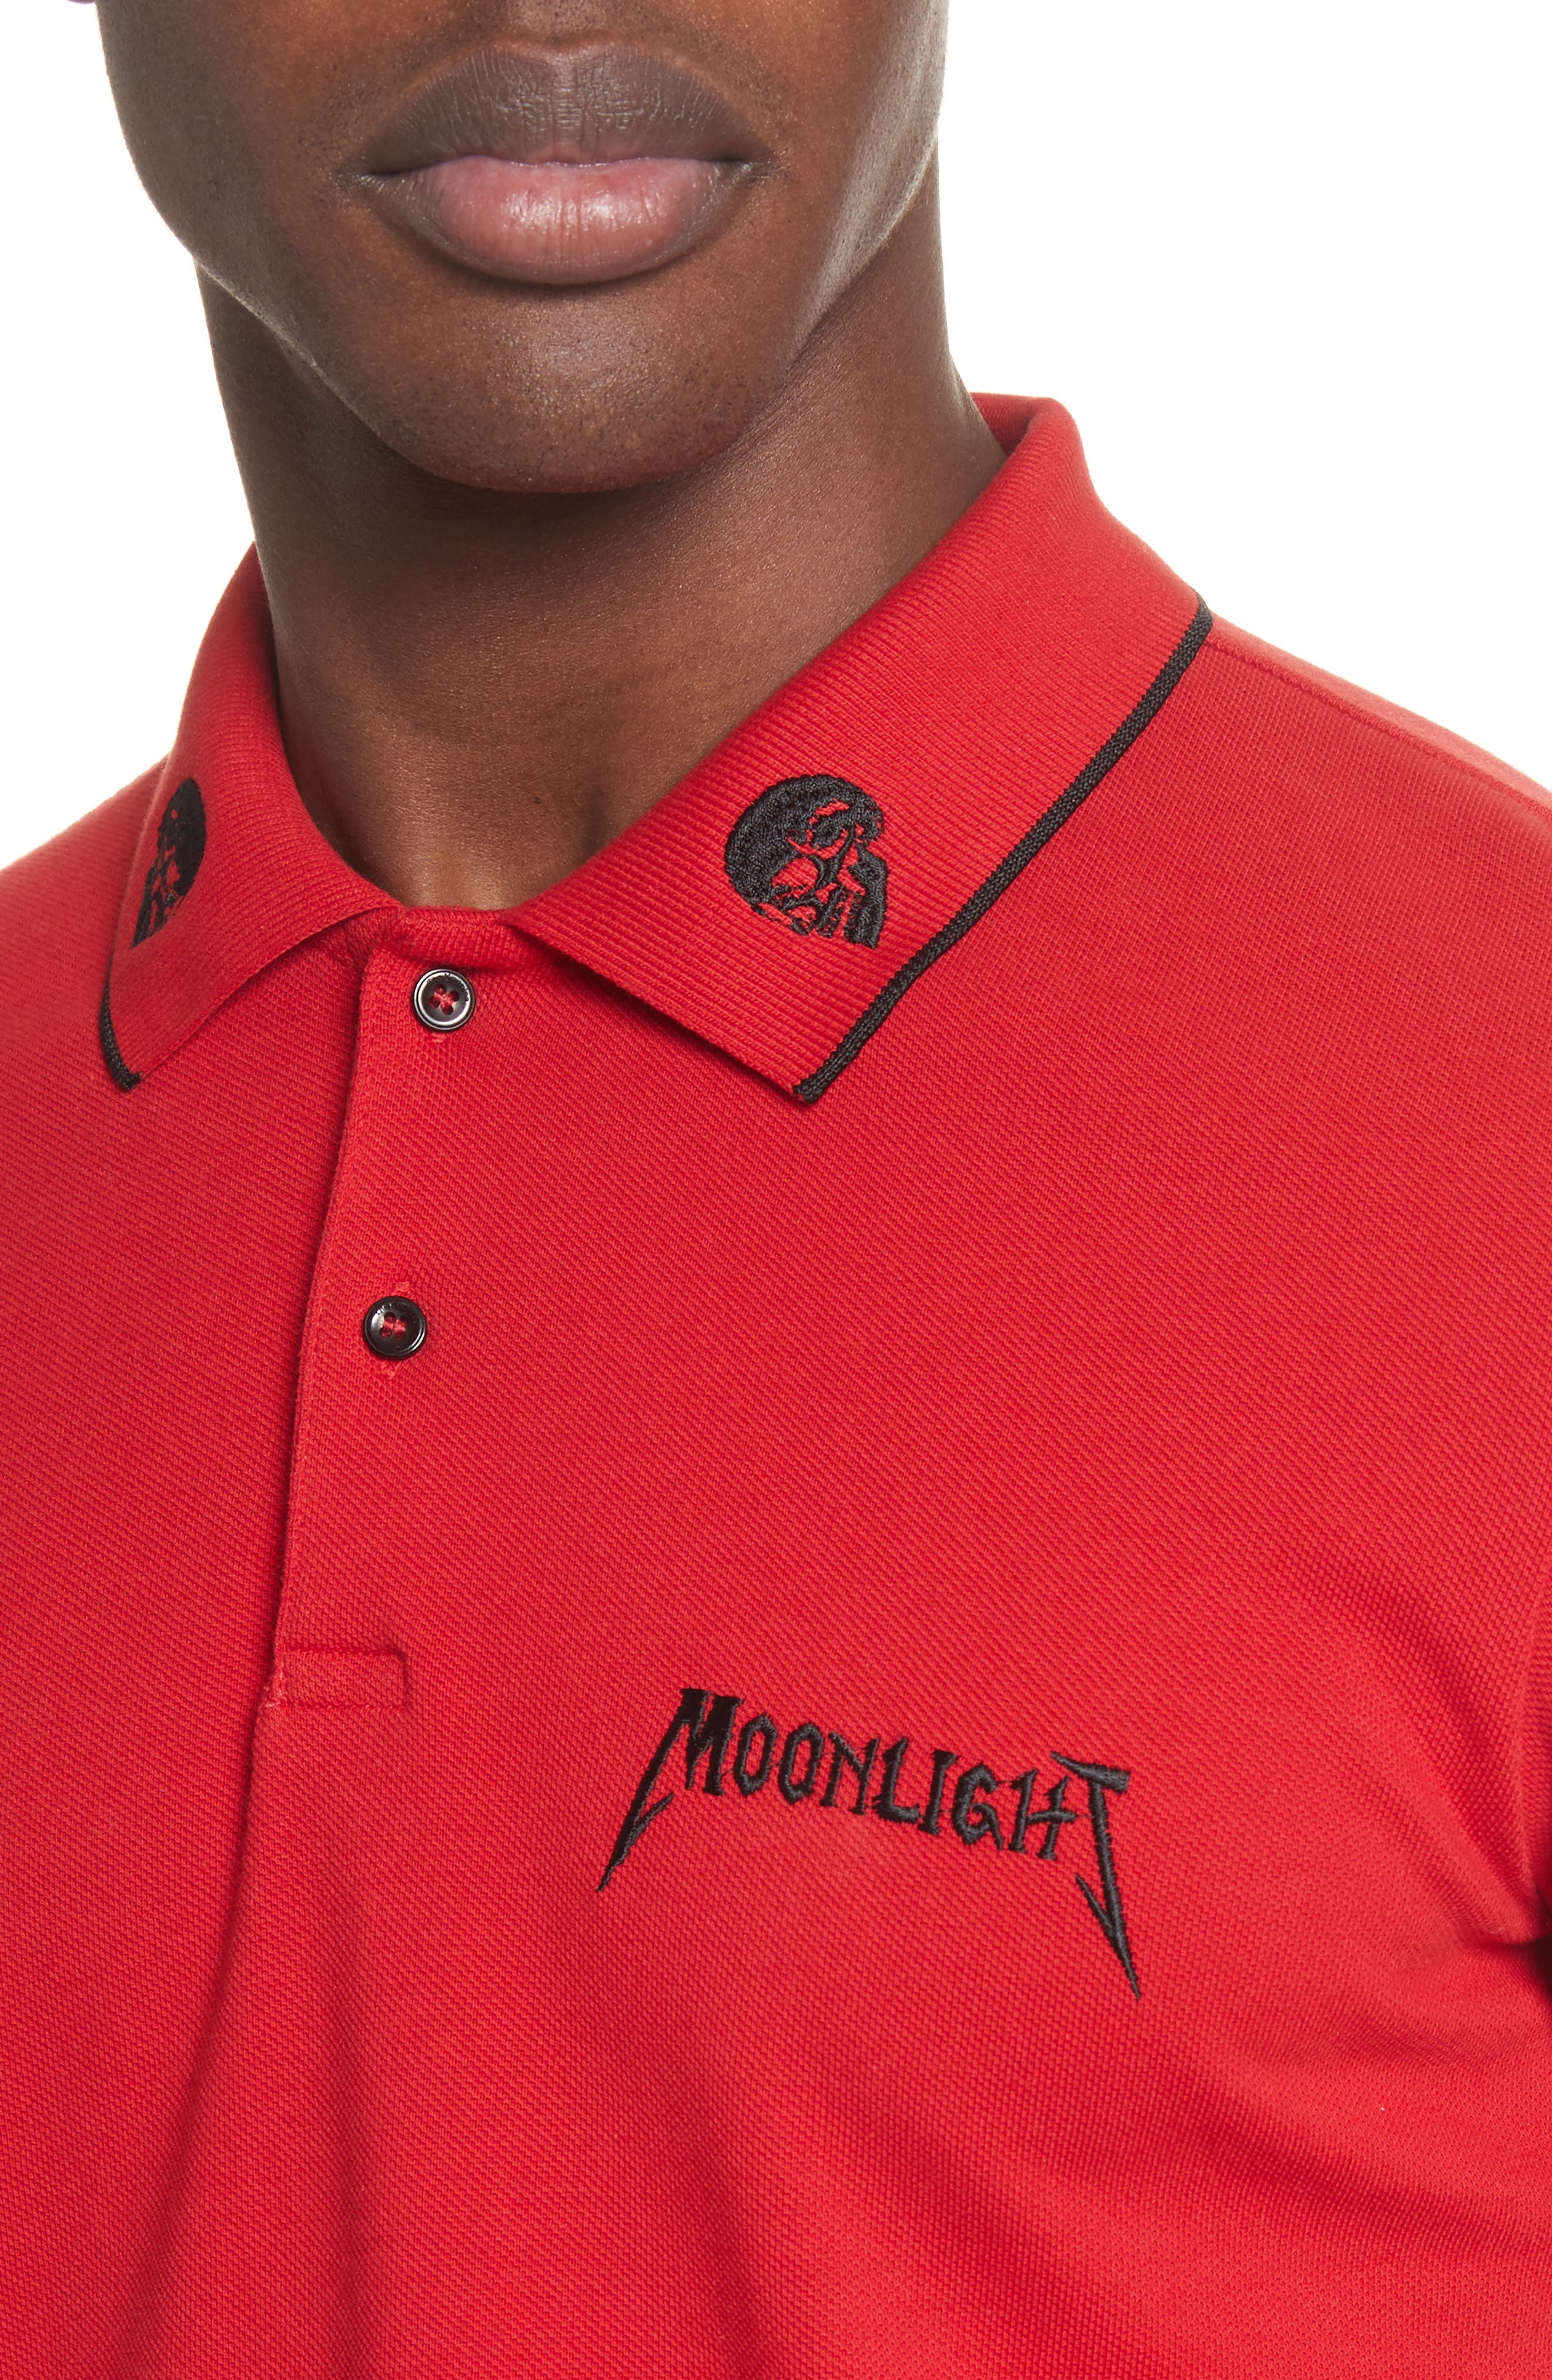 Alternate Image 4  - The Kooples Tipped Piqué Polo